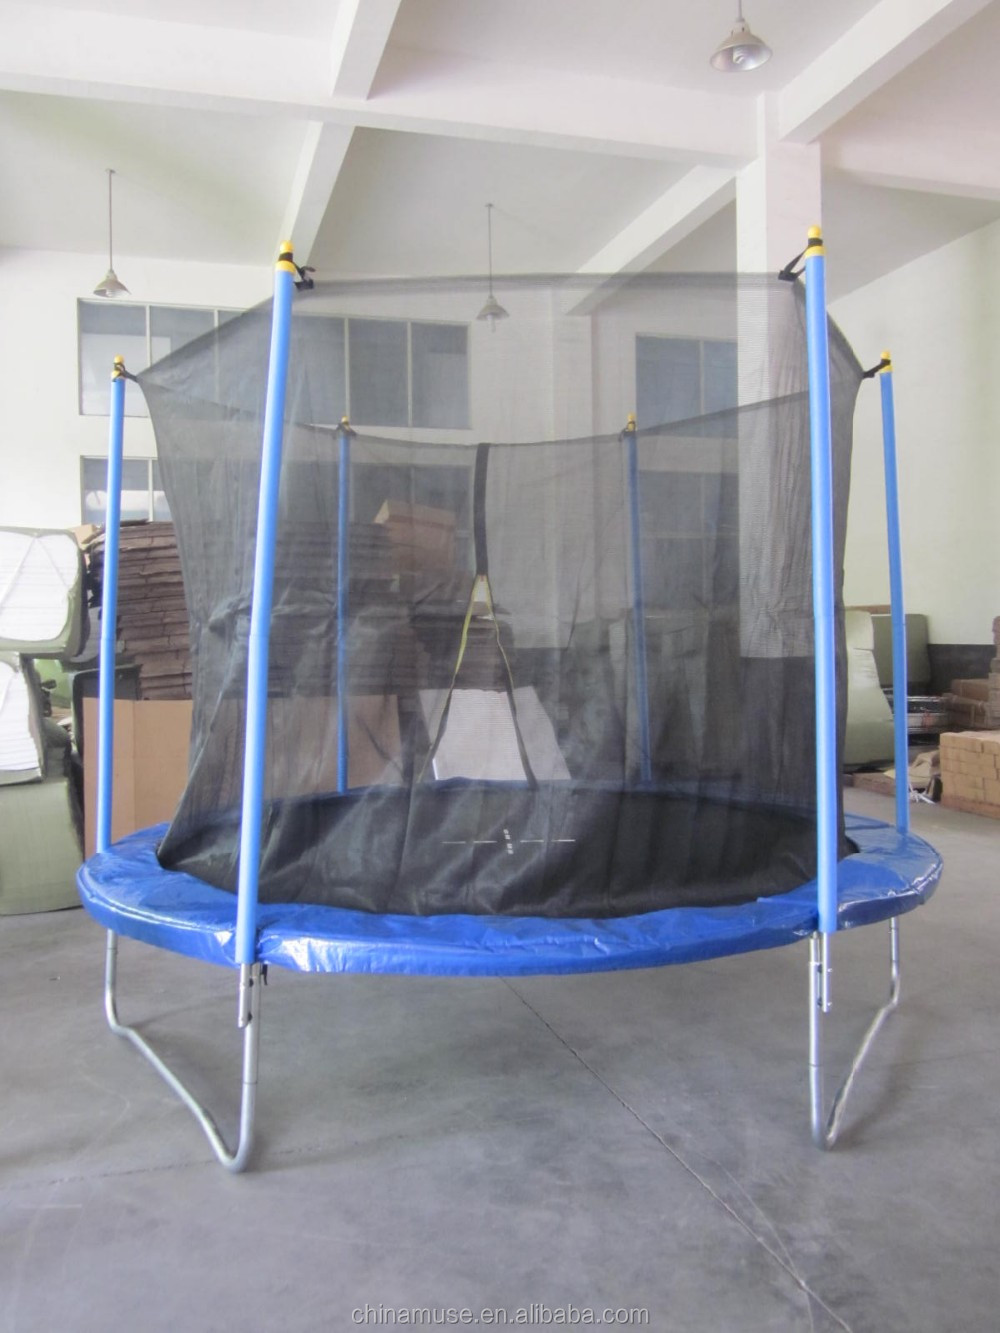 61ab20f78d1fb Garden Furniture 10FT trampoline with outside safety net enclosures outdoor  trampoline in 3 legs in park